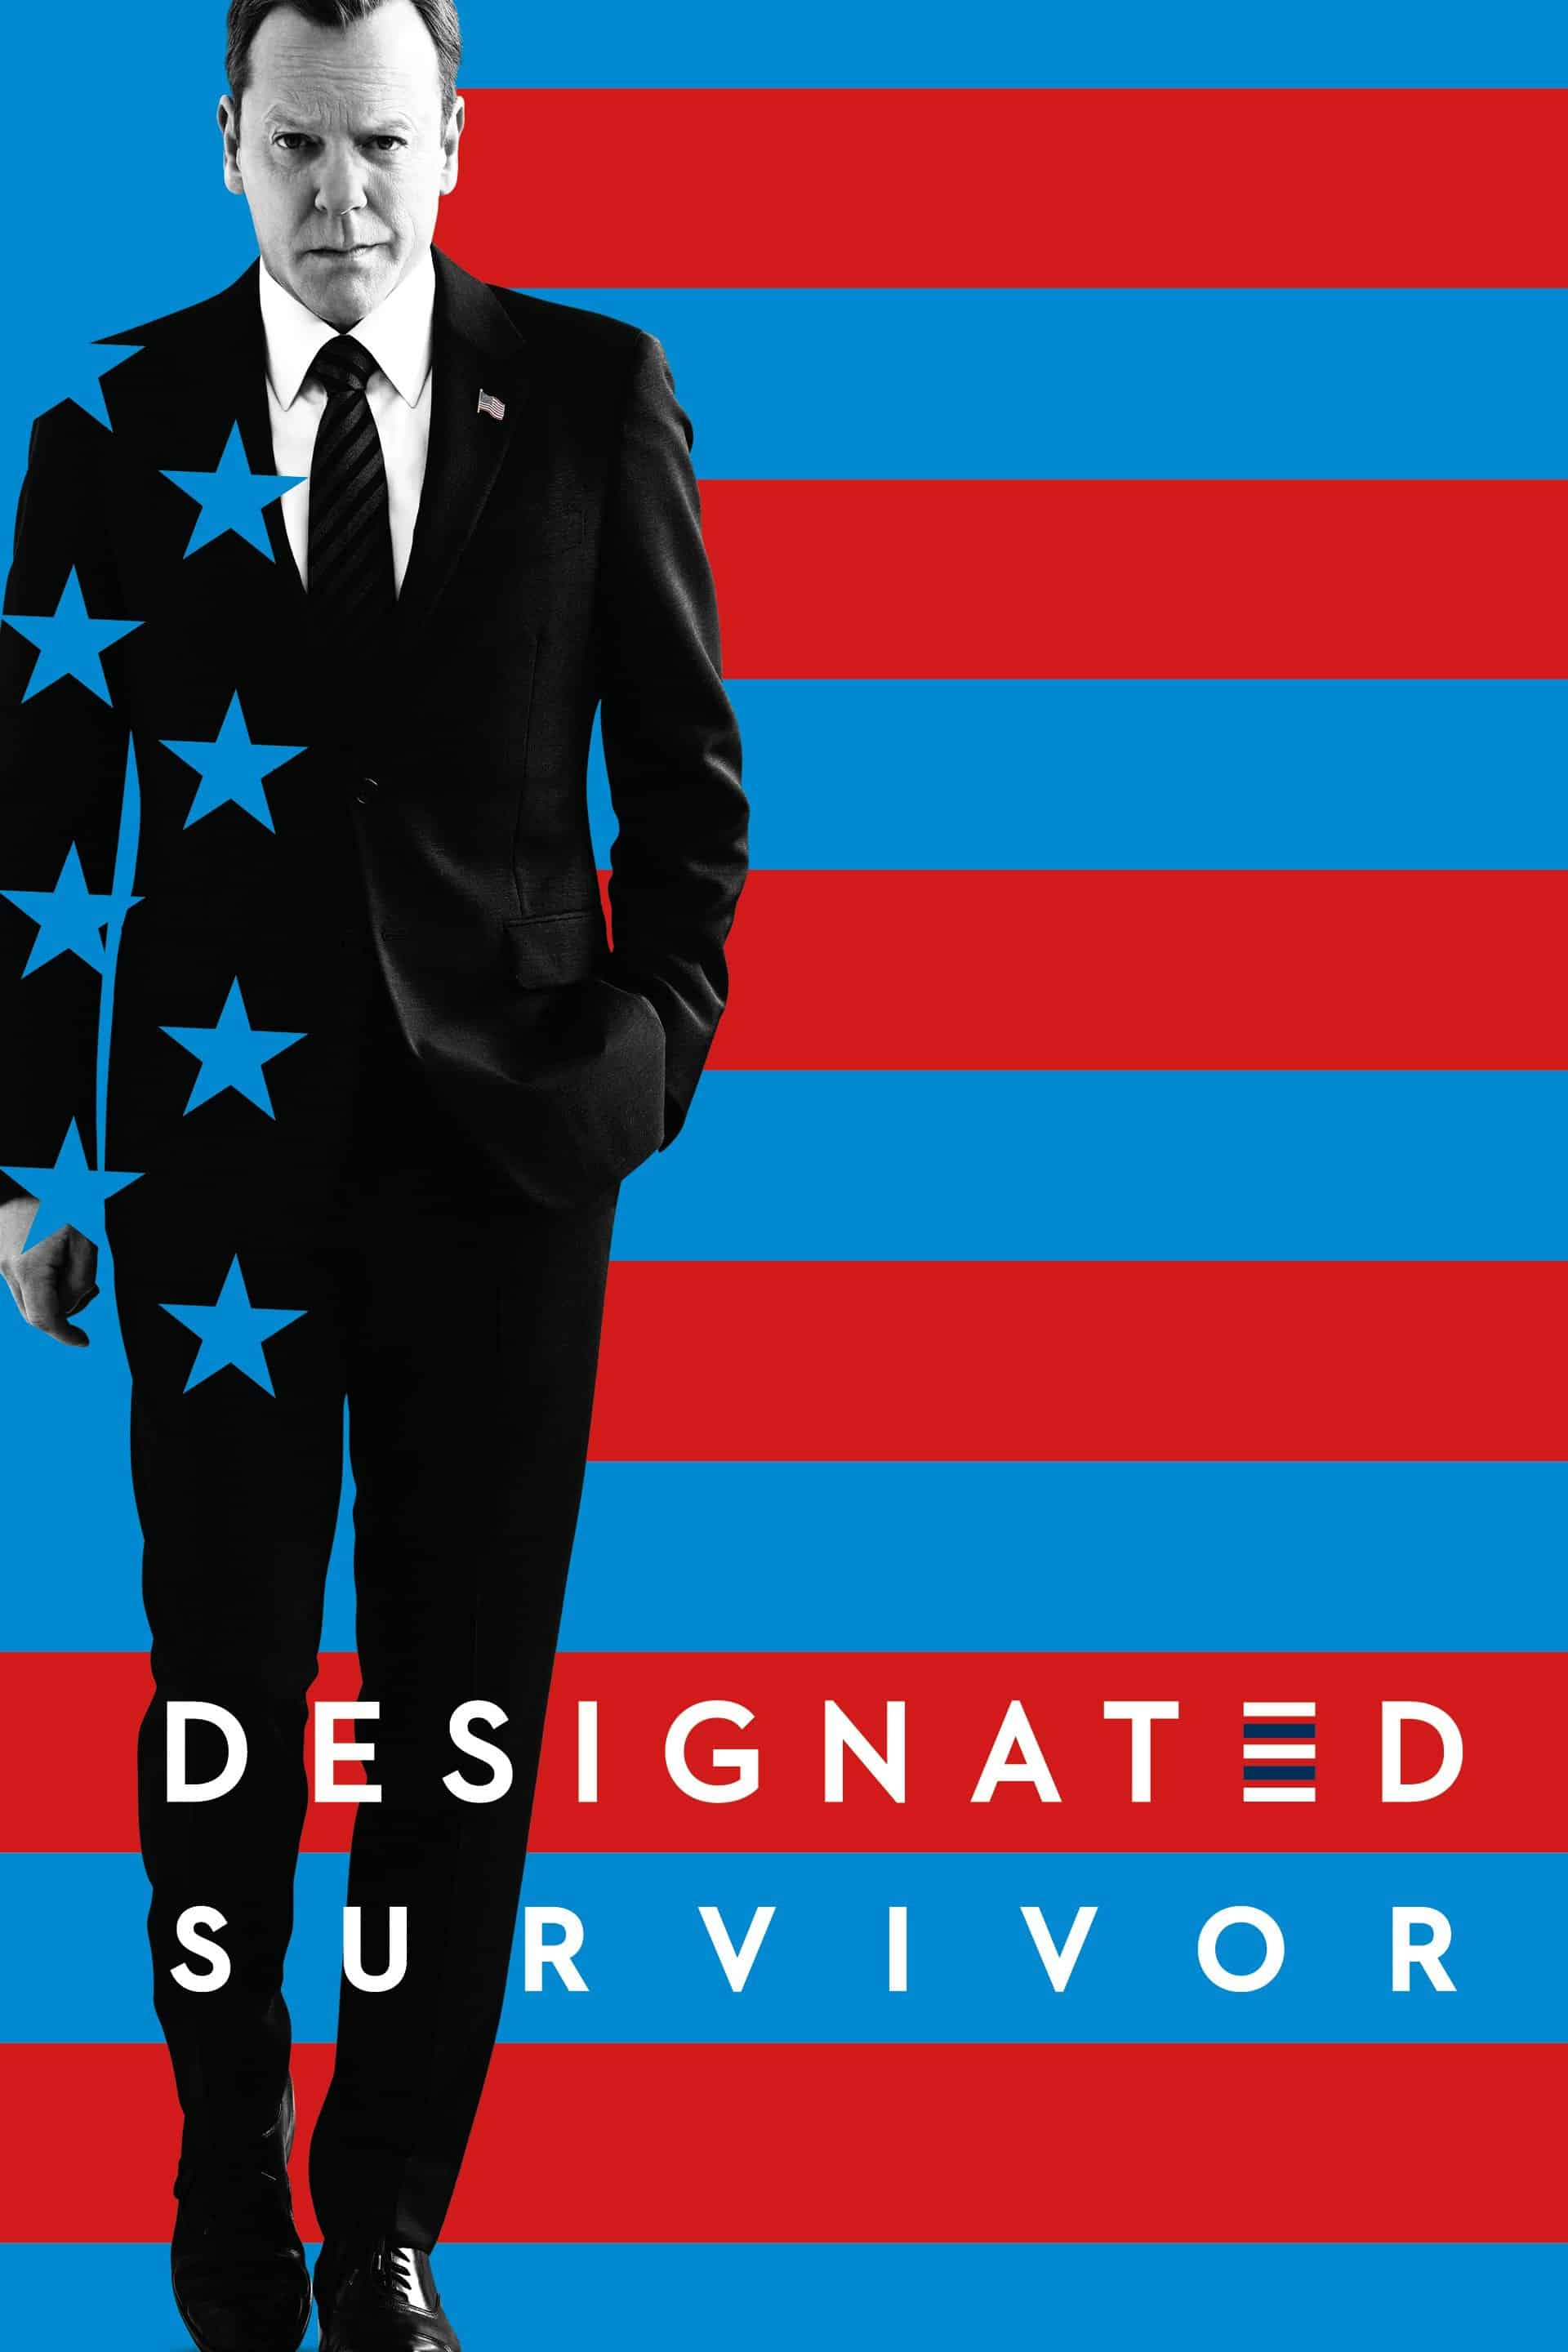 Designated Survivor, 2016